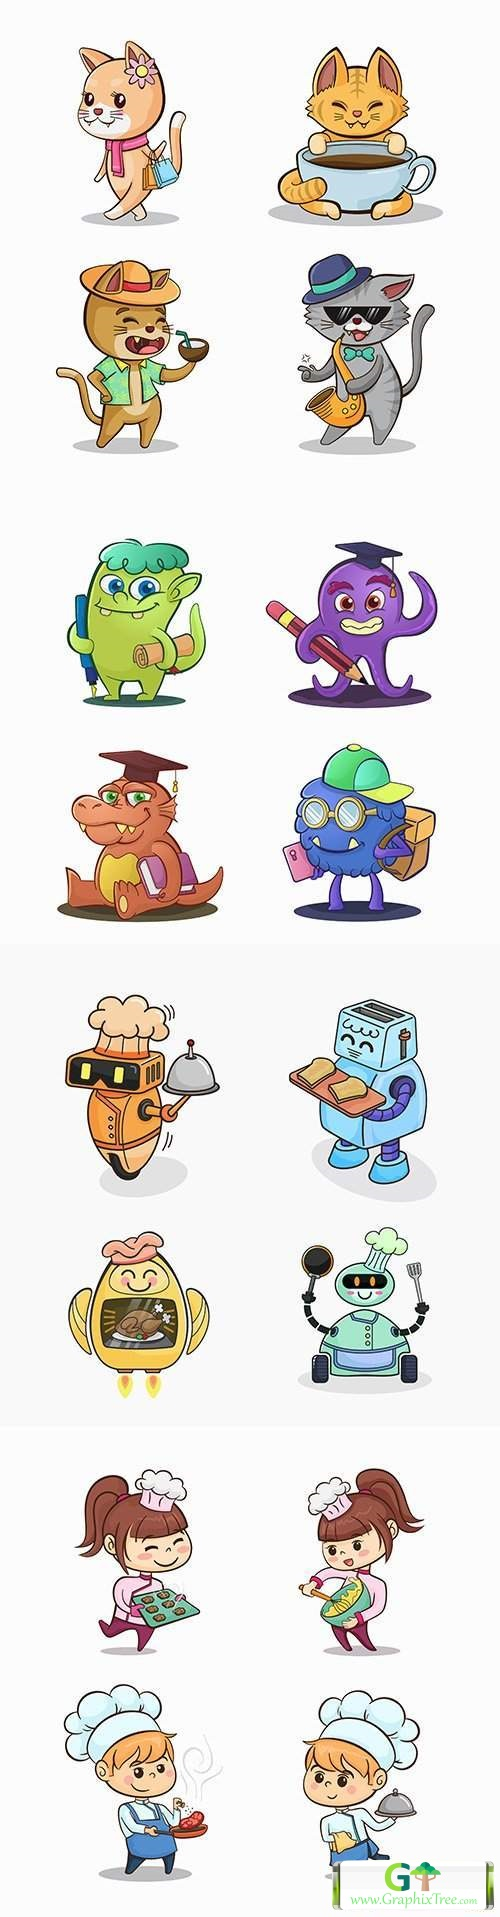 Funny cartoon characters drawn design illustrations